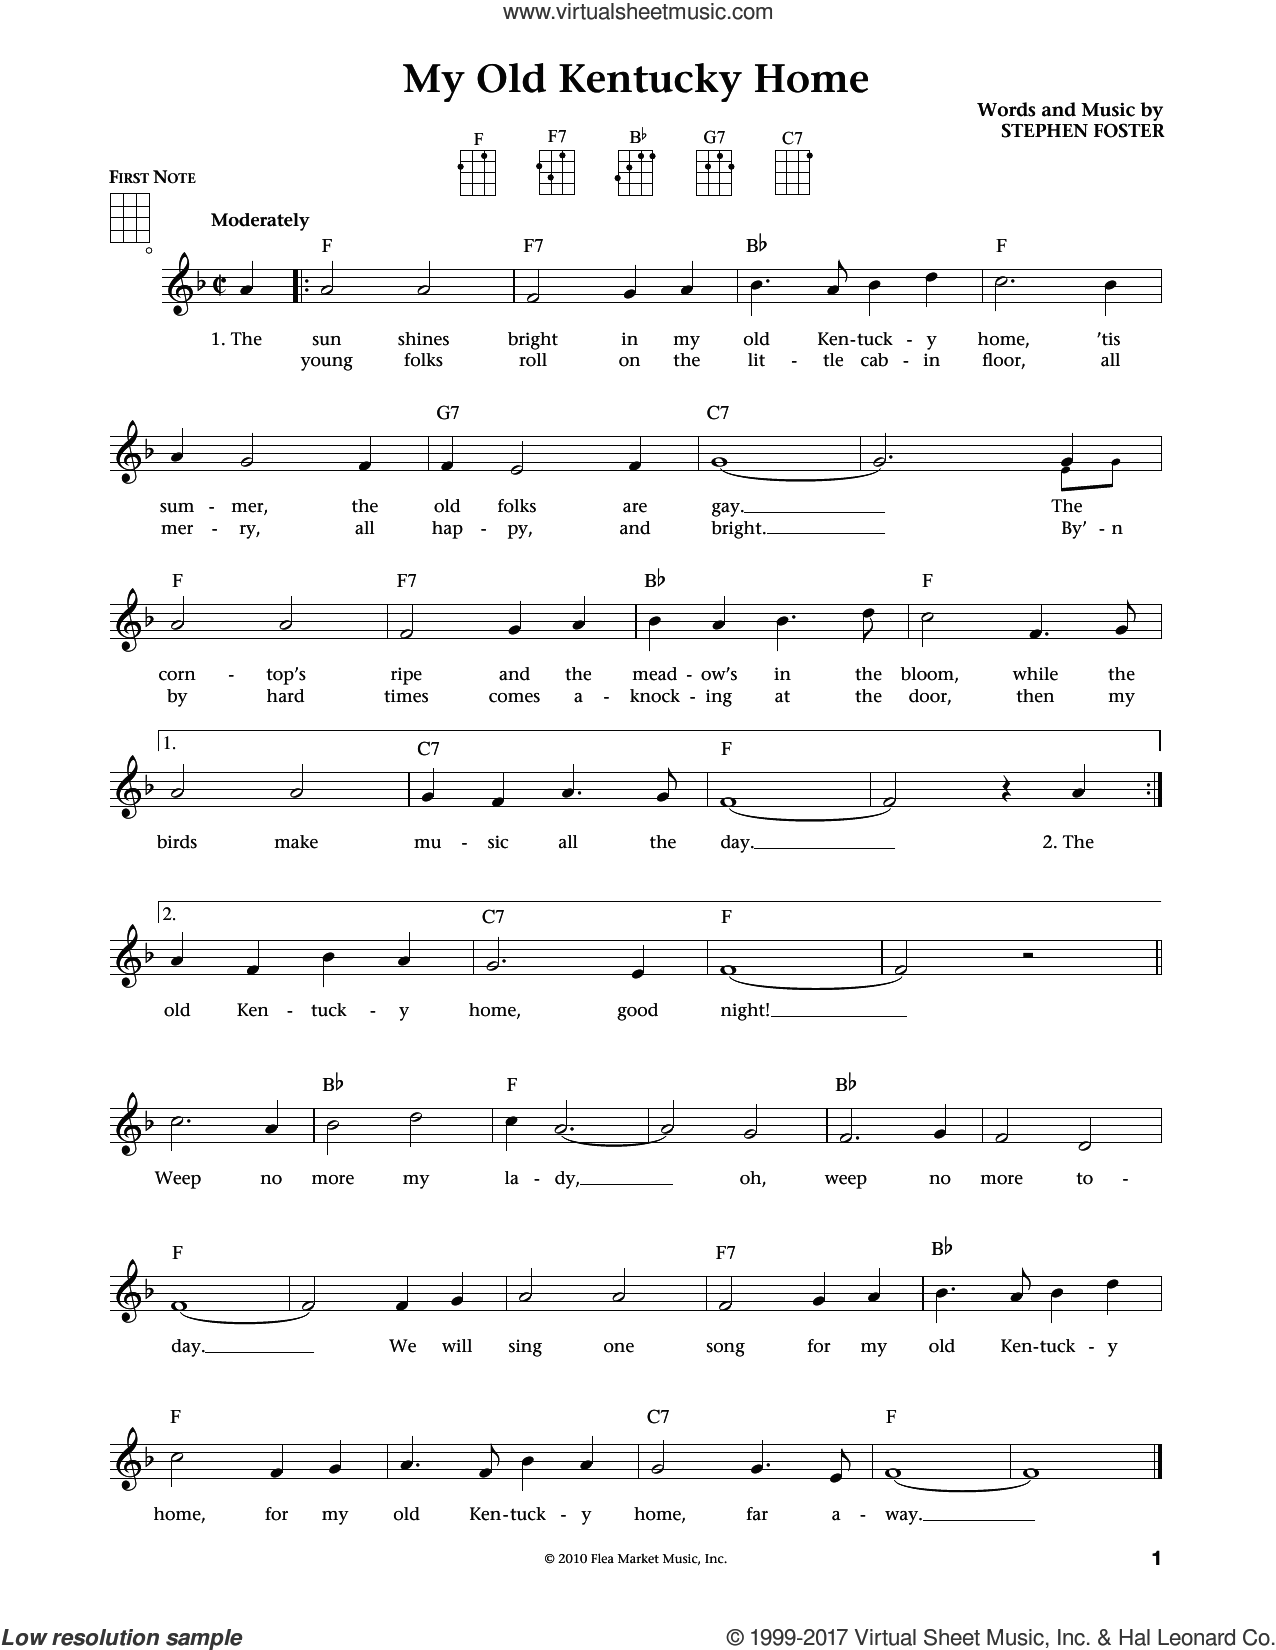 My Old Kentucky Home sheet music for ukulele by Stephen Foster. Score Image Preview.